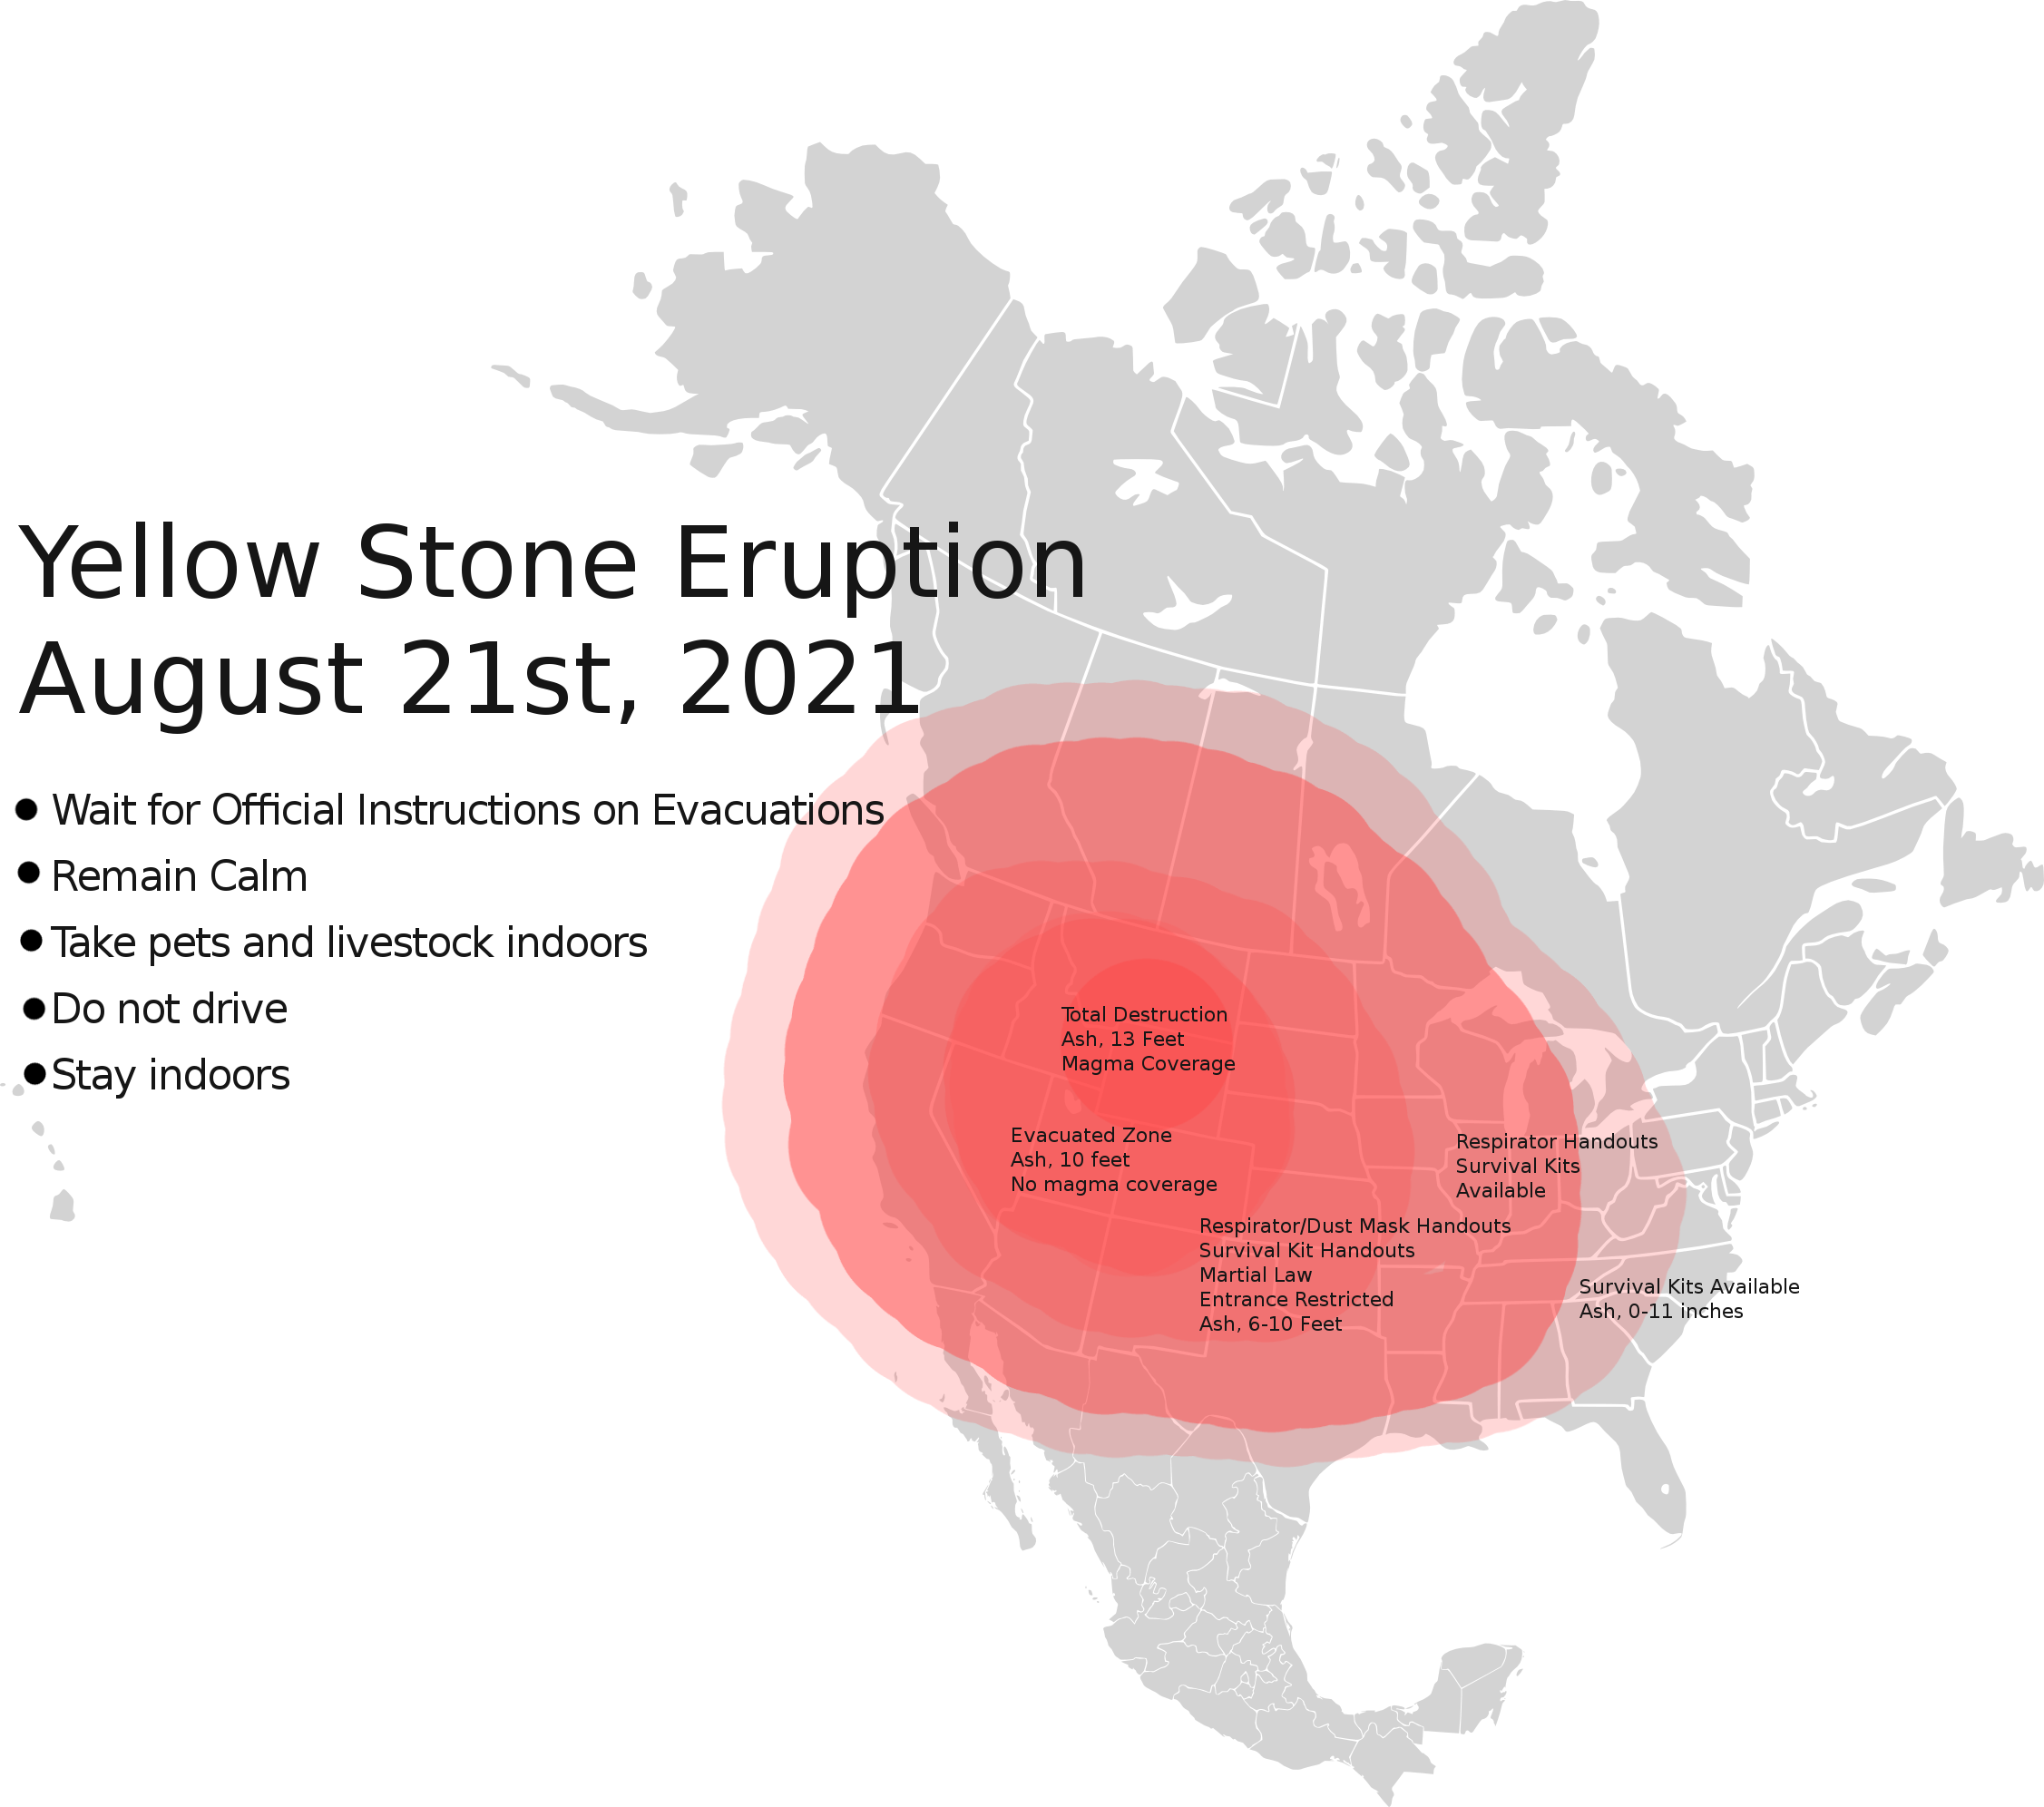 yellowstone supervolcano eruption - photo #36